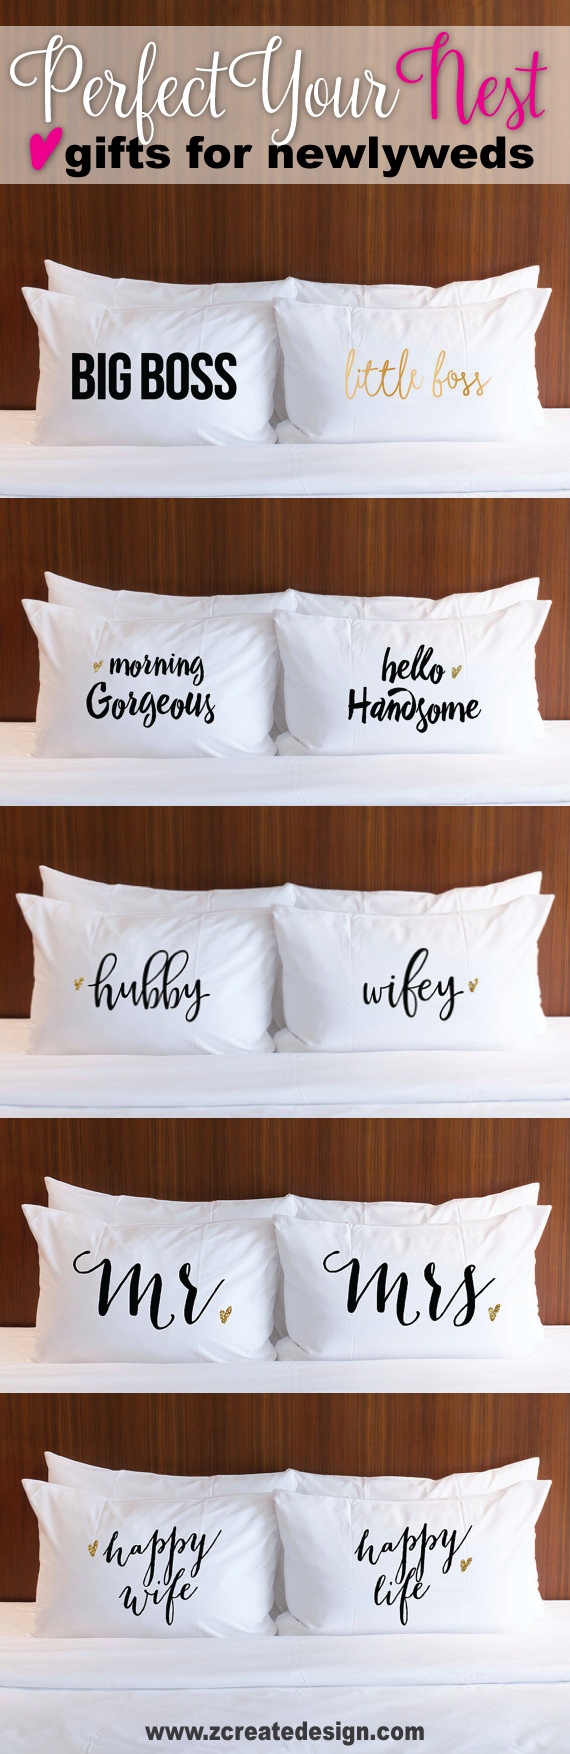 Cutest Wedding Gifts Or Any Time For S Making Their Home Perfect After